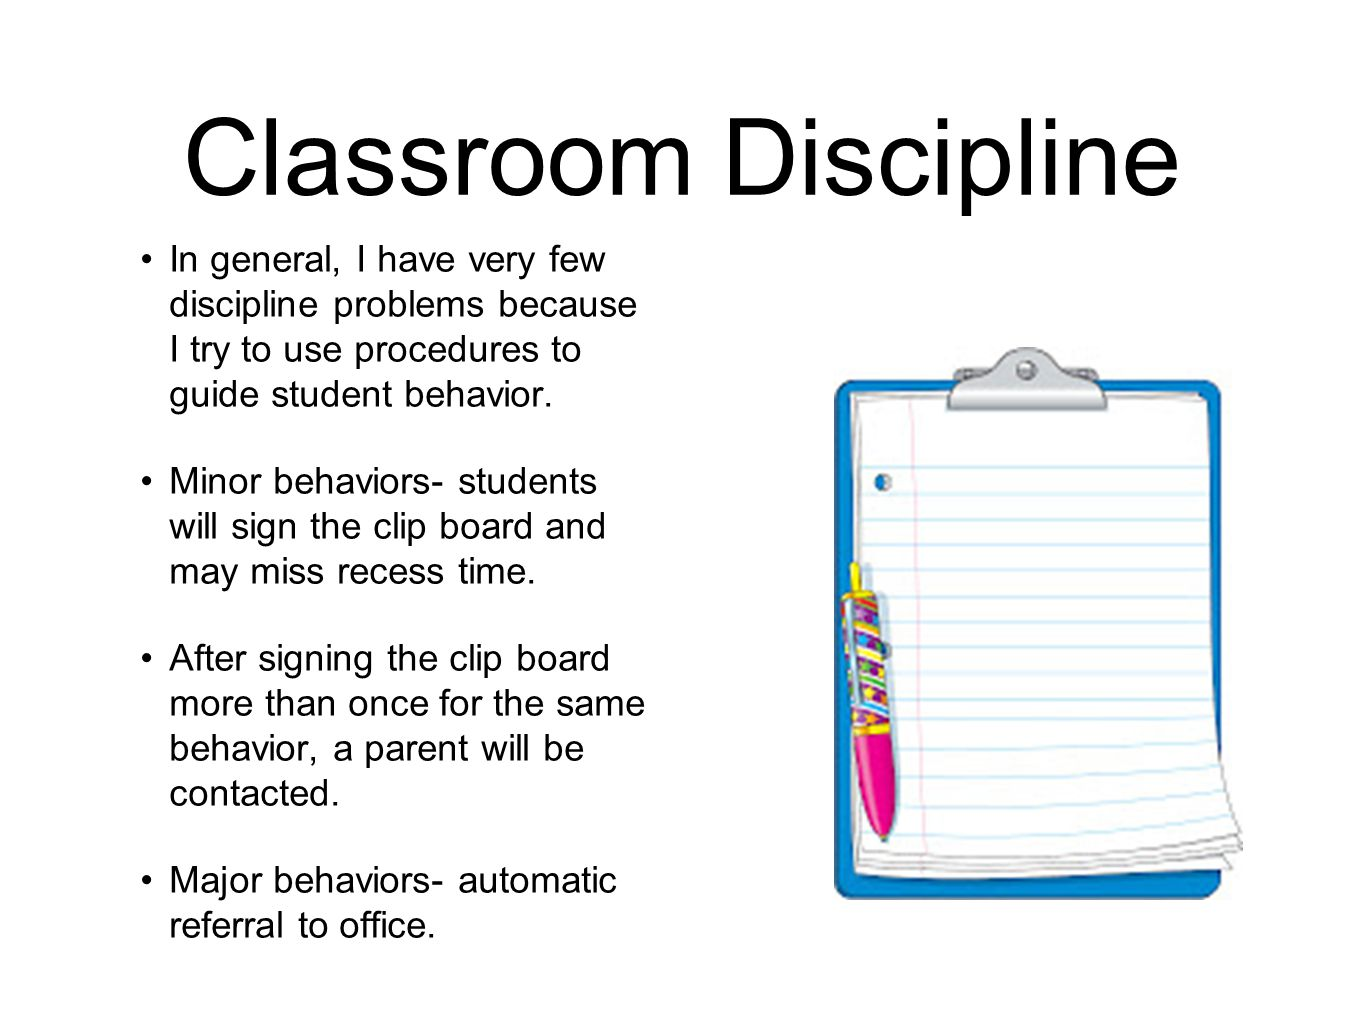 Classroom Discipline In general, I have very few discipline problems because I try to use procedures to guide student behavior.